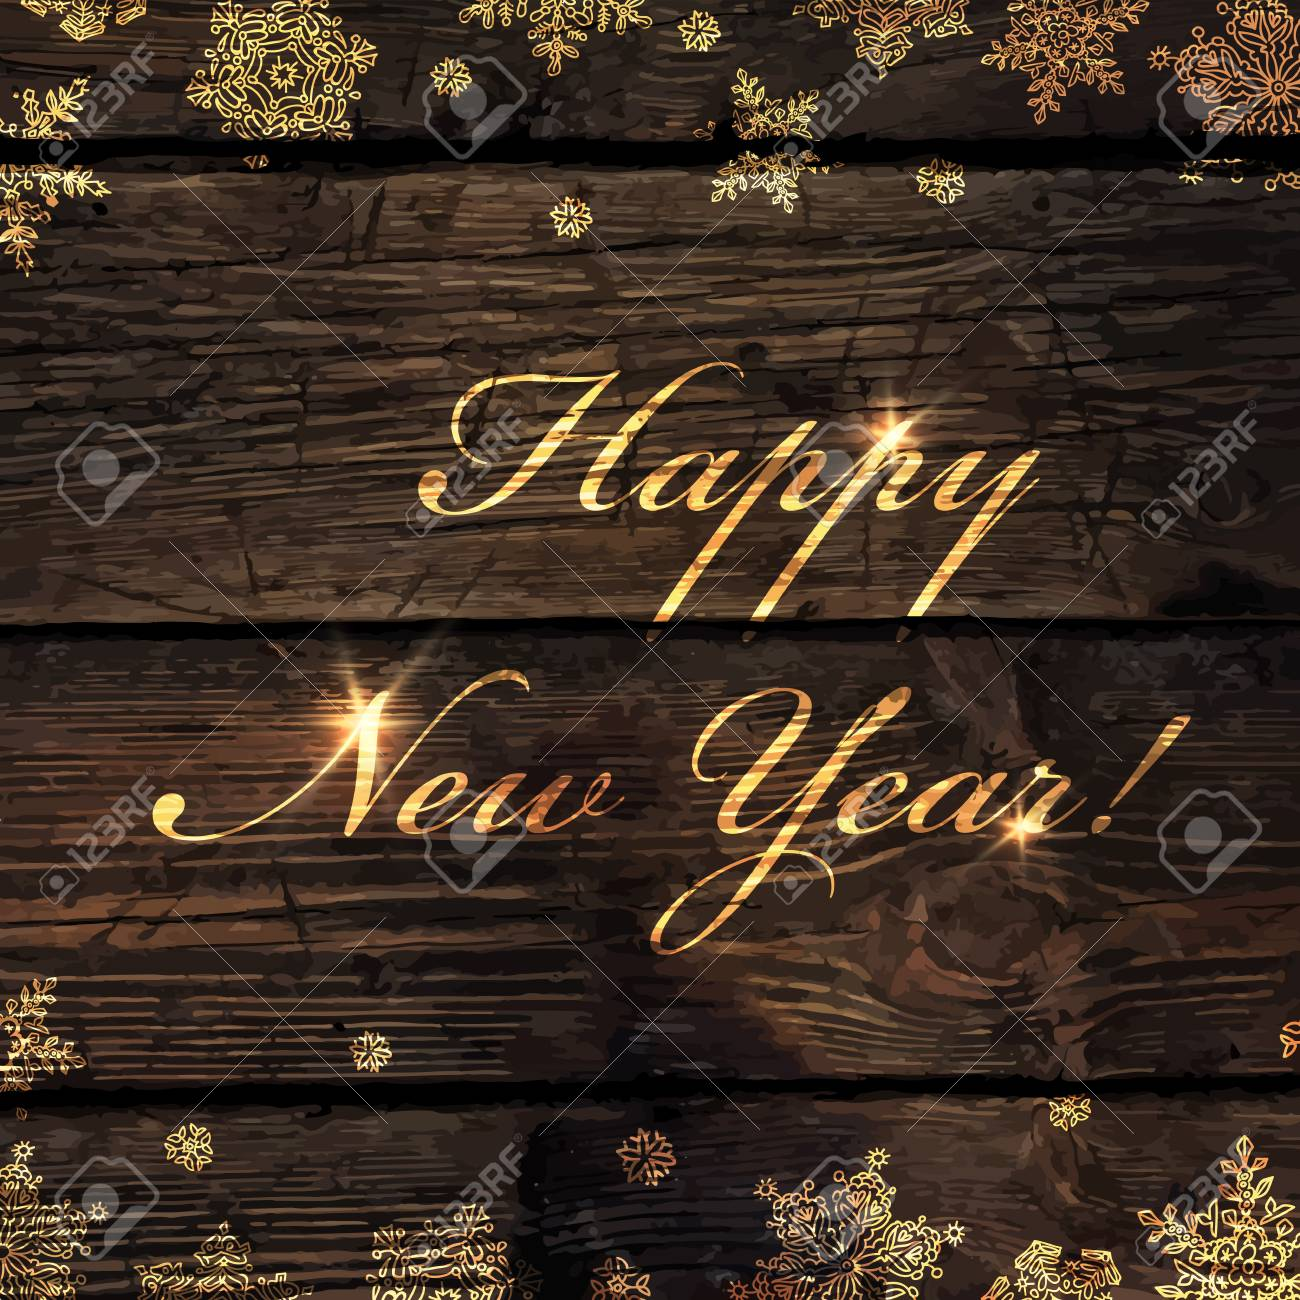 happy new year golden greeting on wooden background snowflakes border isolated by downside